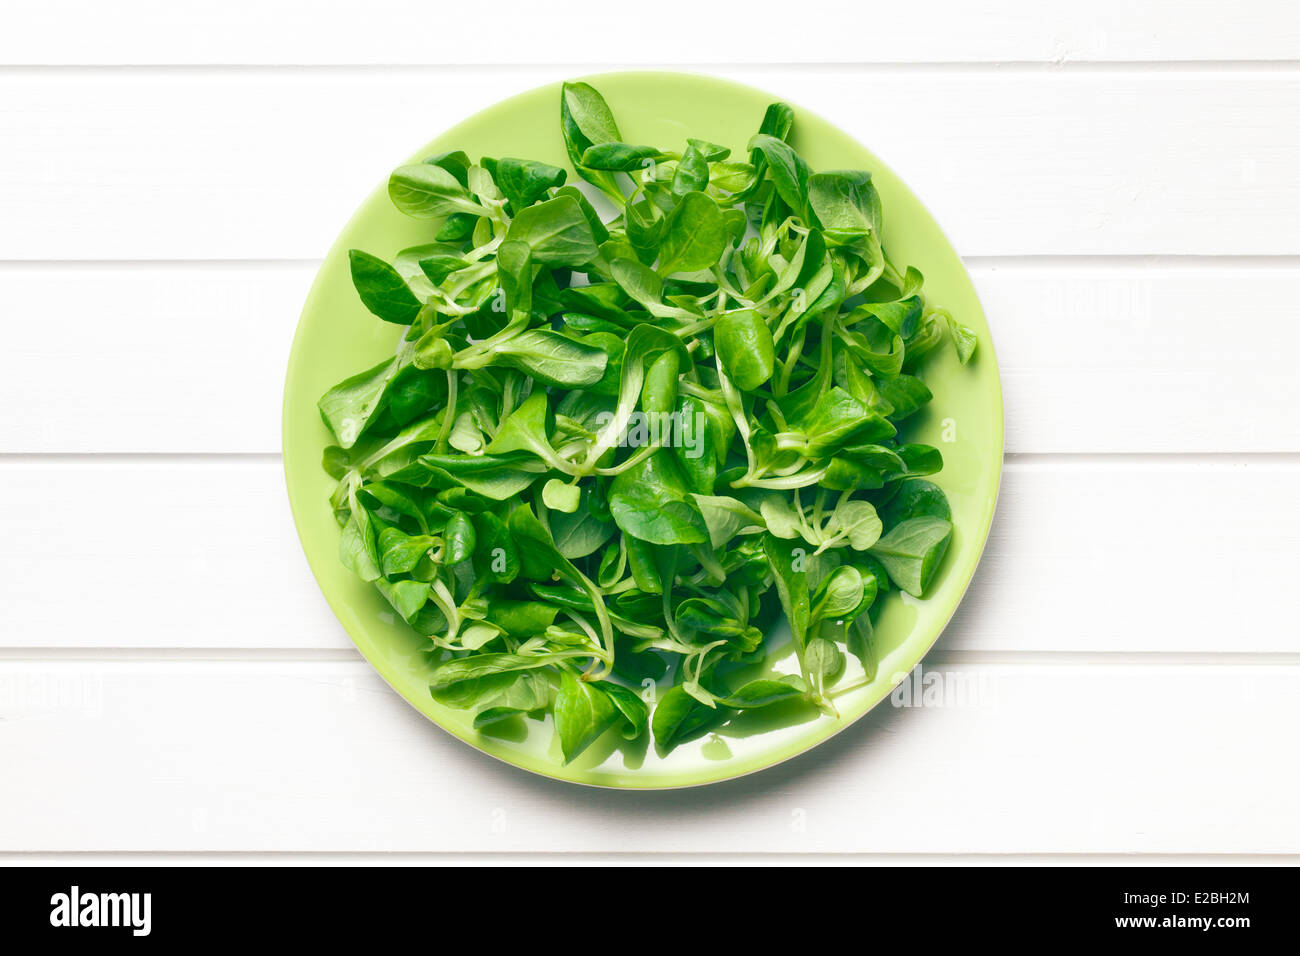 top view of corn salad, lamb's lettuce - Stock Image